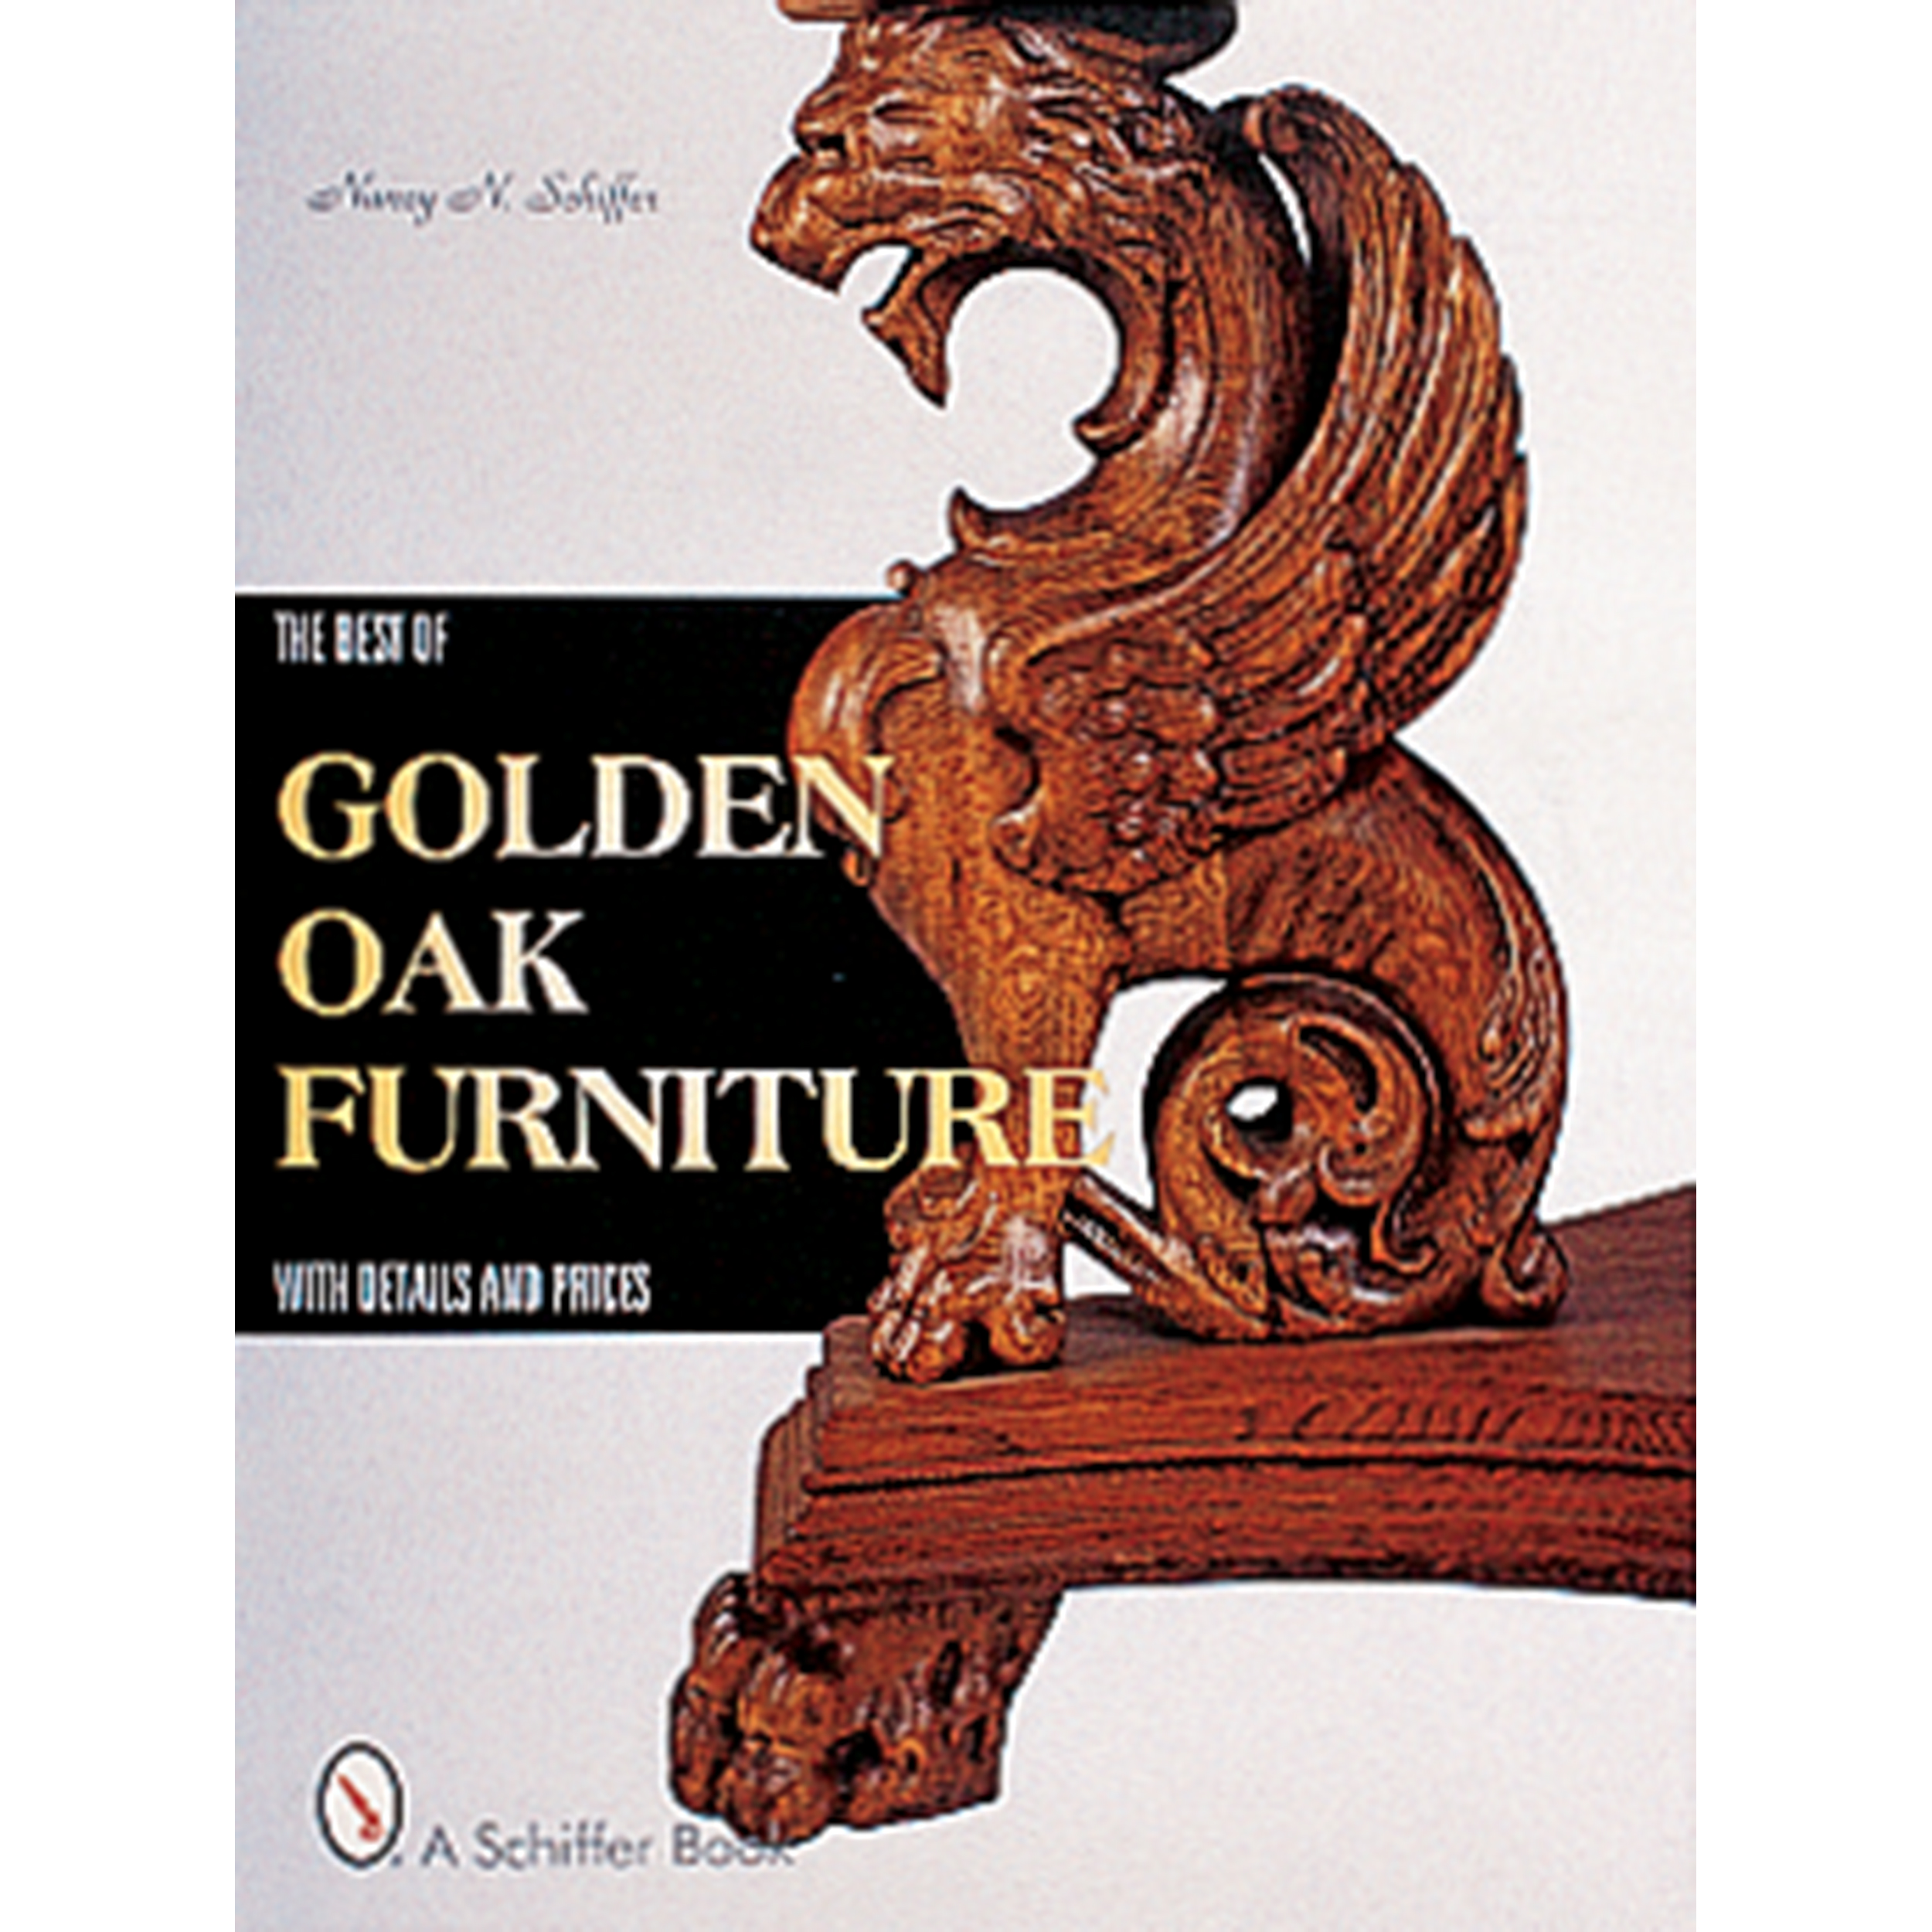 The Best of Golden Oak Furniture, with Details and Prices